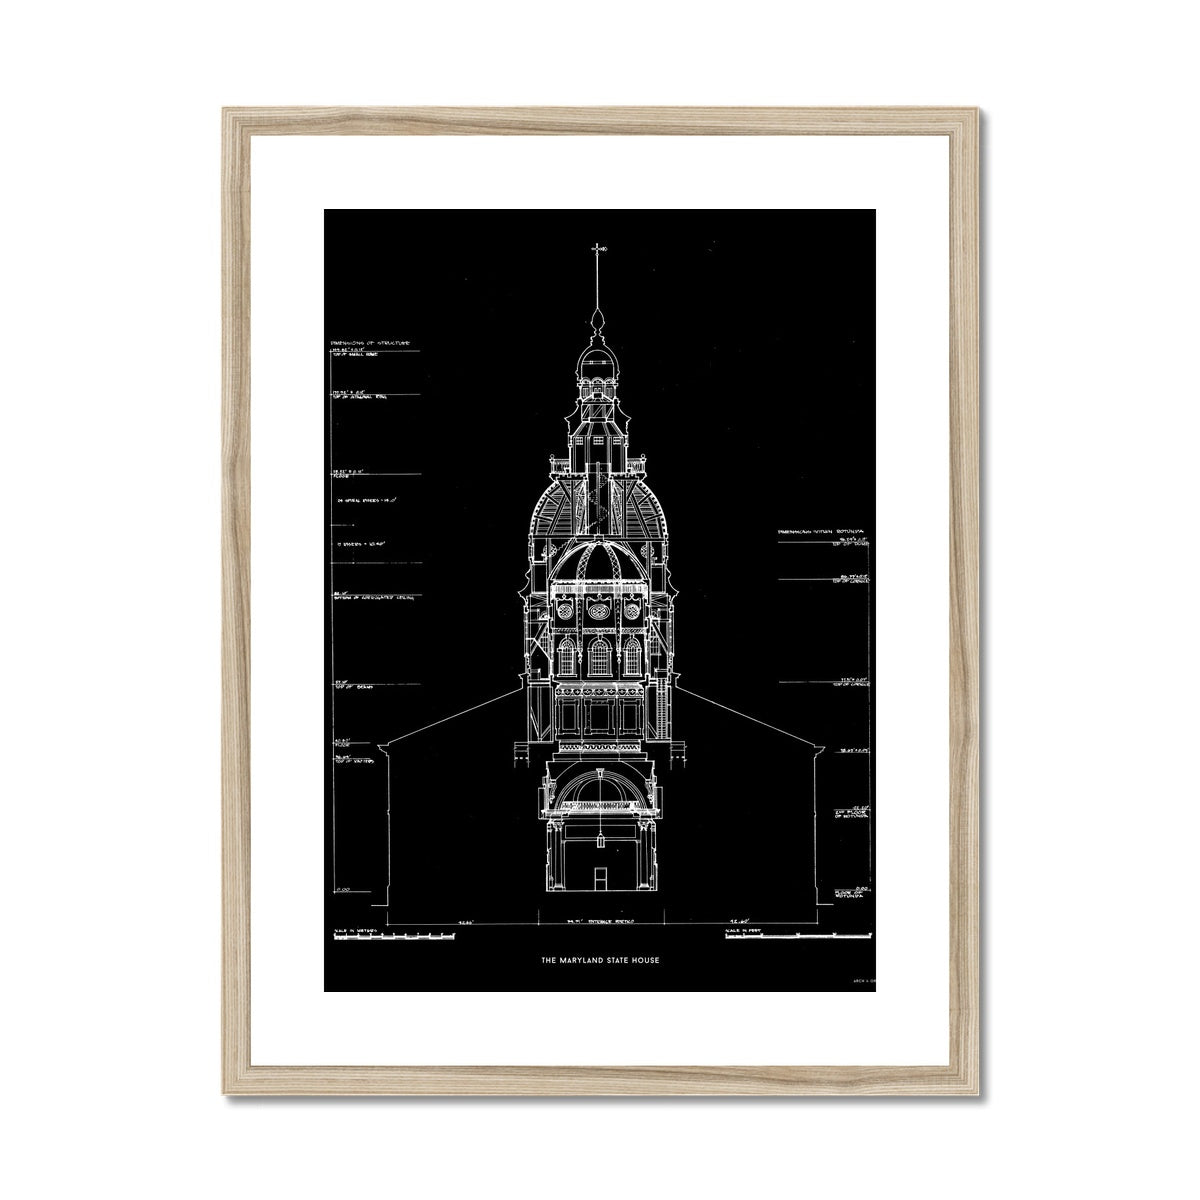 The Maryland State House - Northwest Elevation Cross Section - Black -  Framed & Mounted Print